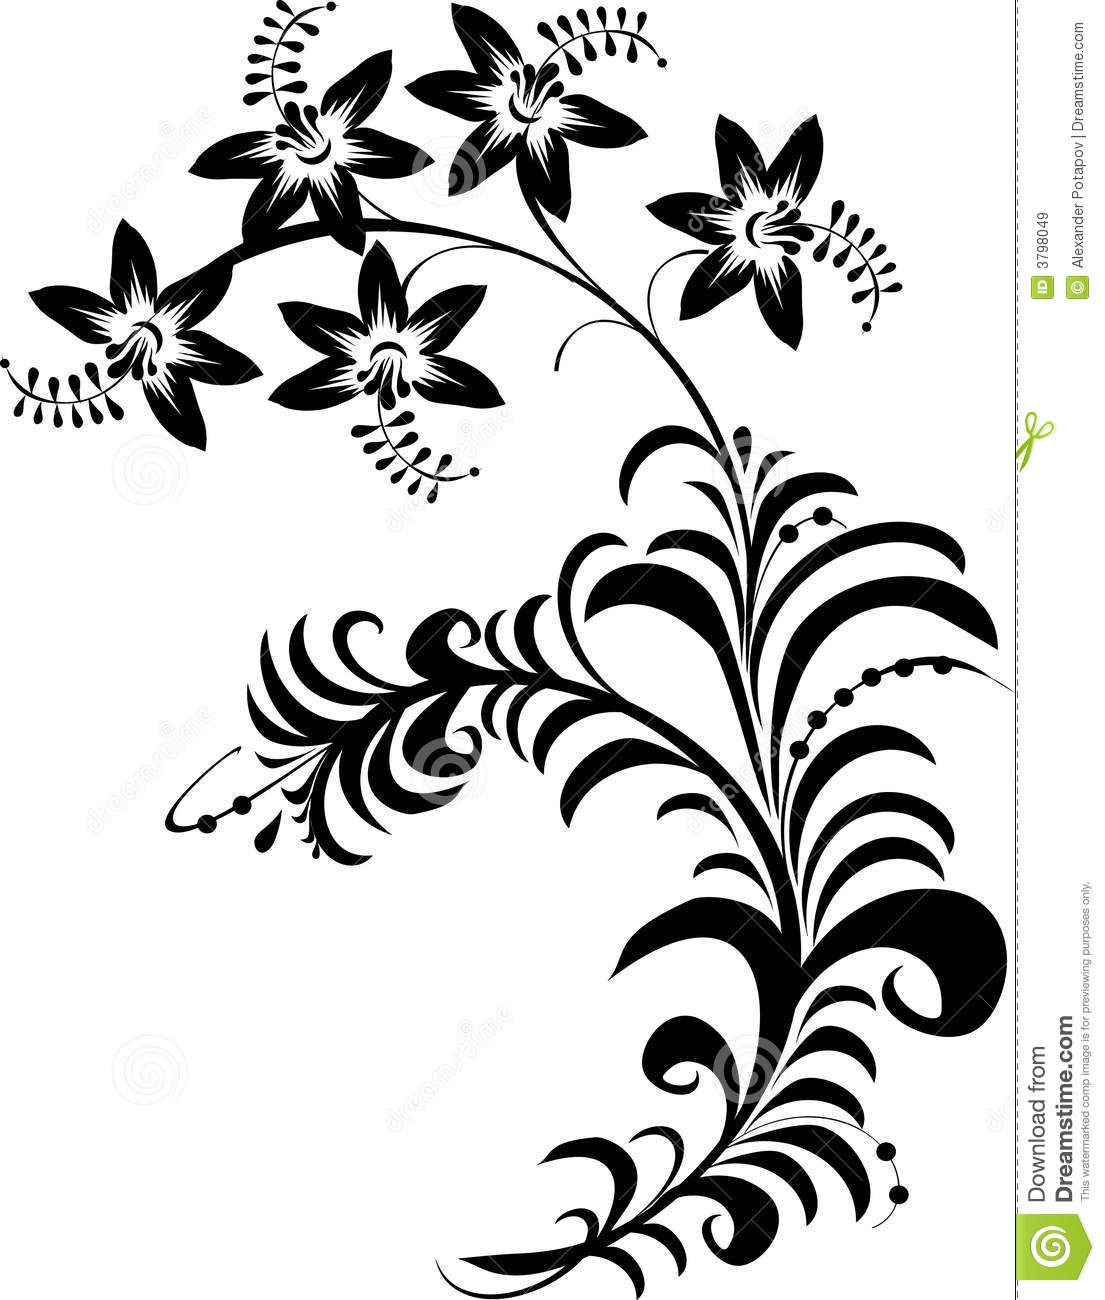 Black and white flowers stock vector illustration of illustration black and white flowers mightylinksfo